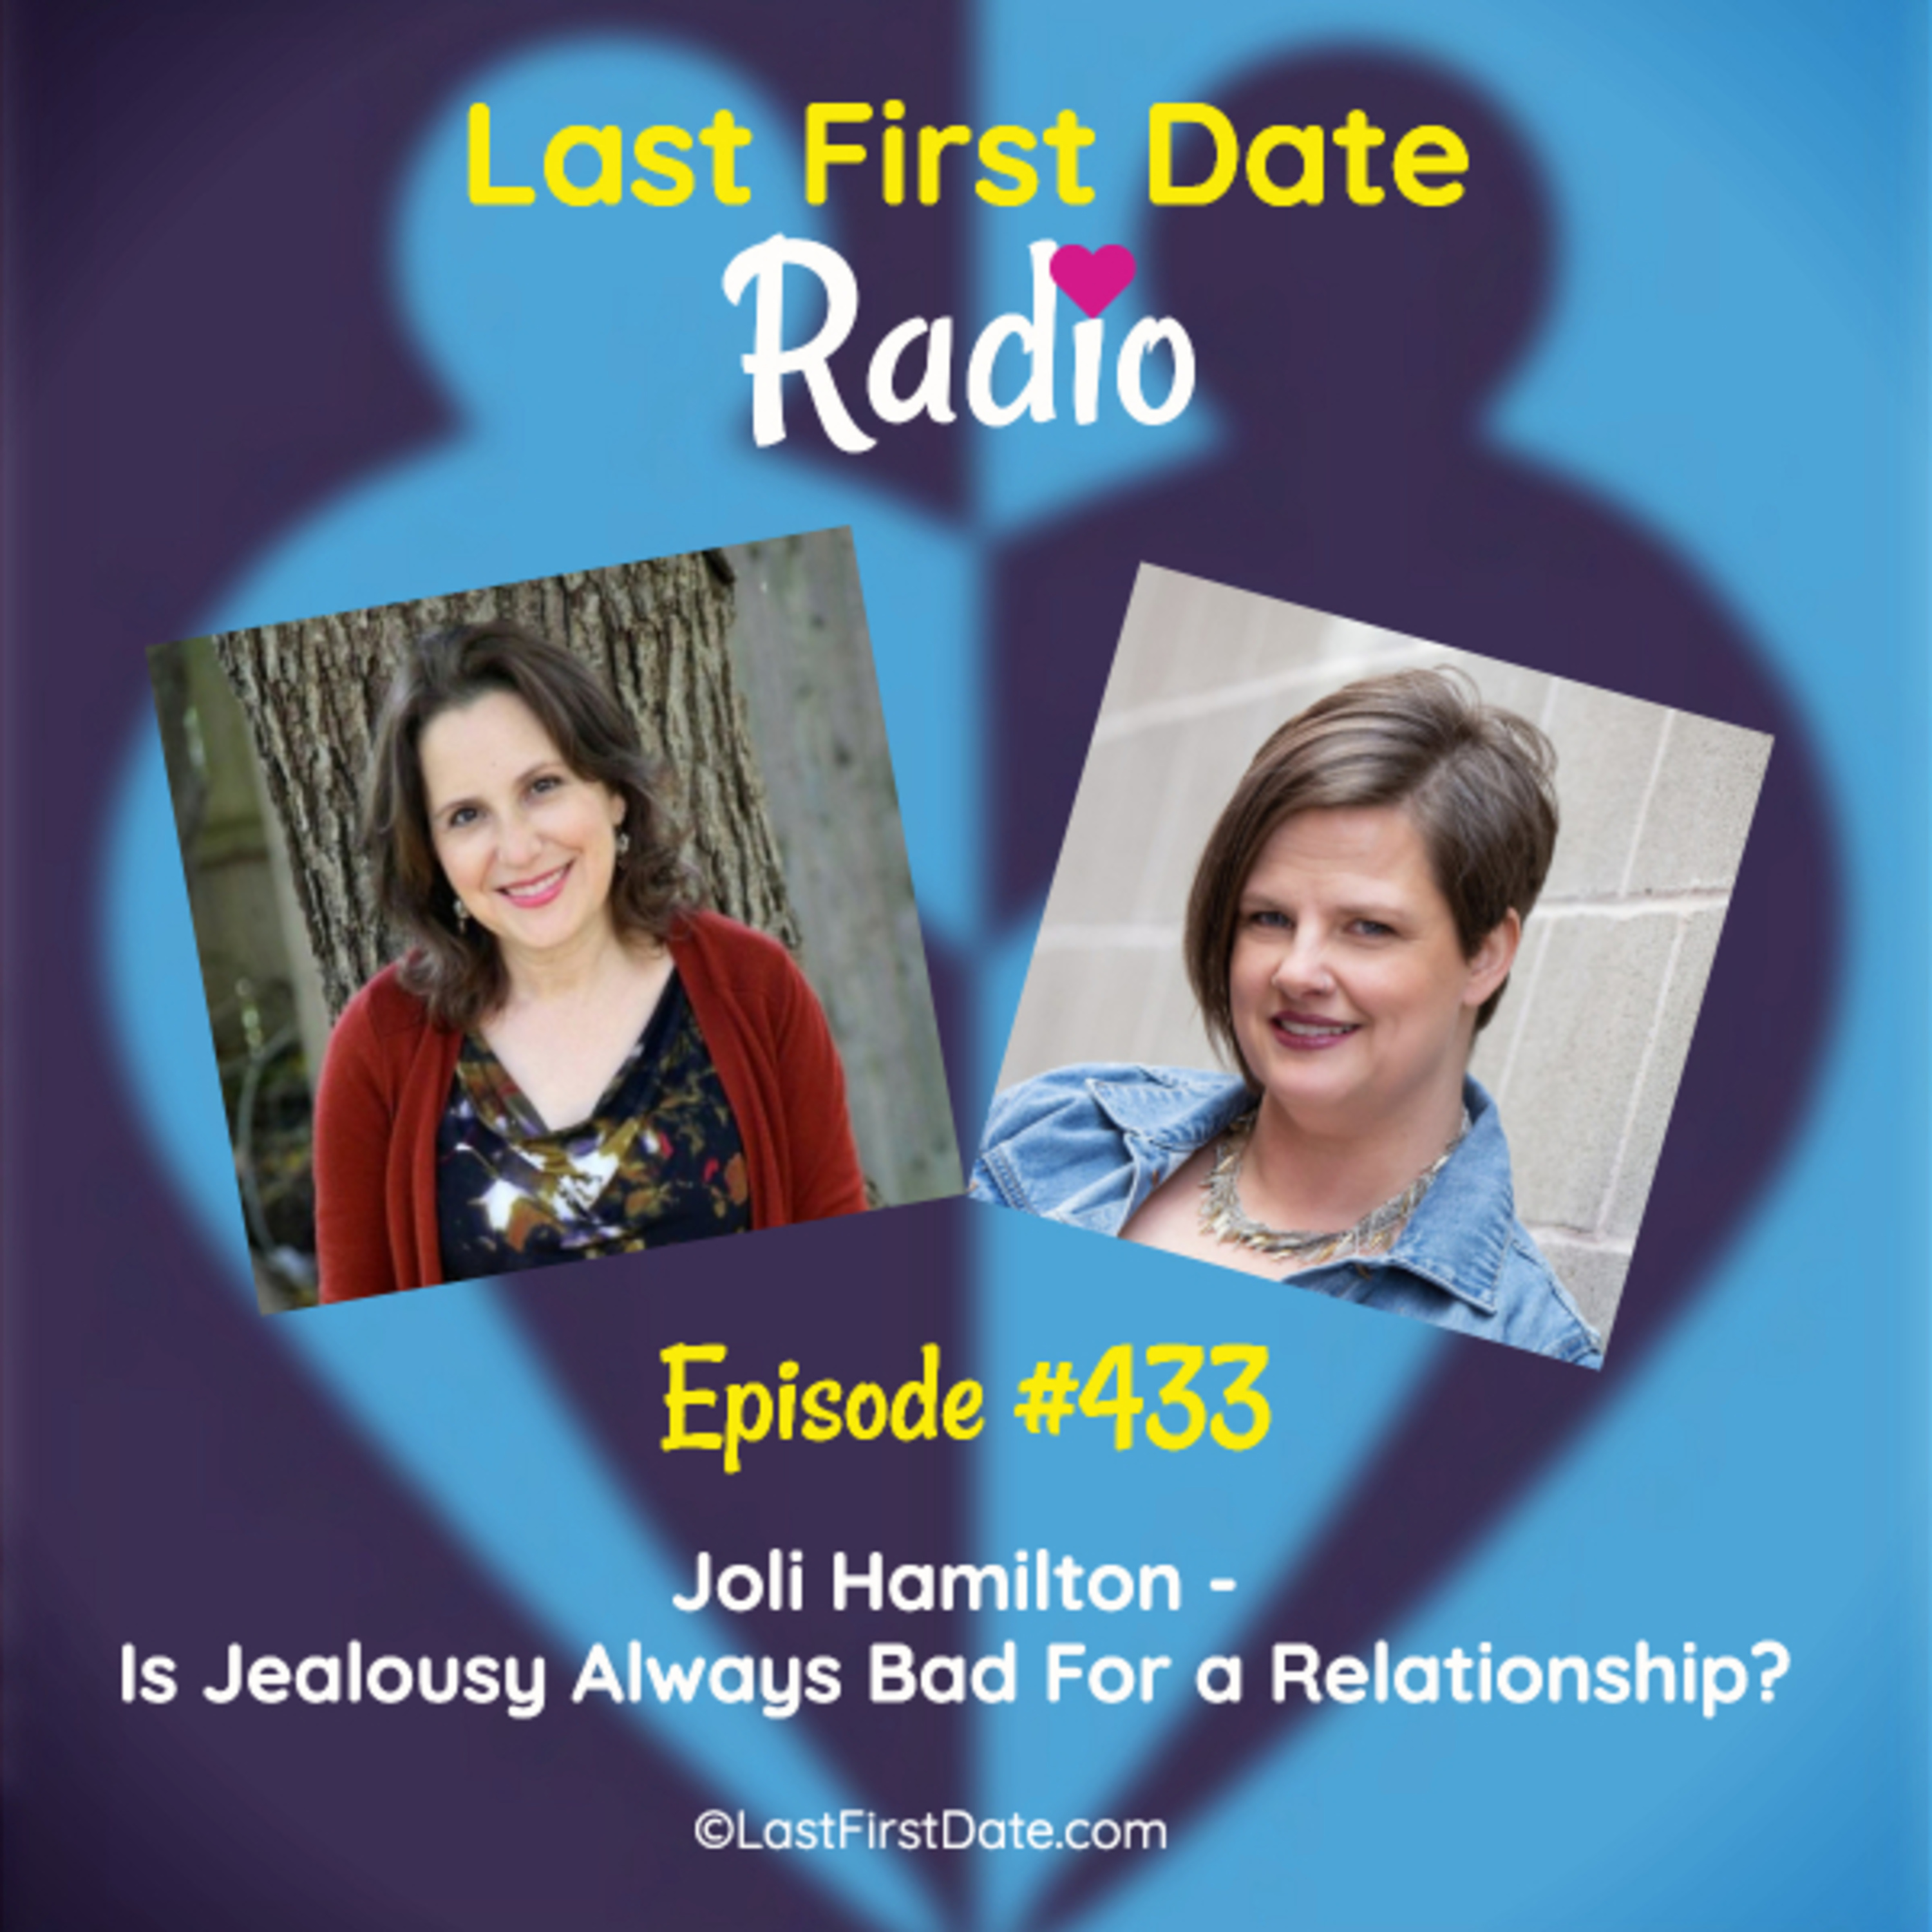 Last First Date Radio - EP 433: Joli Hamilton - Is Jealousy Always Bad For a Relationship?